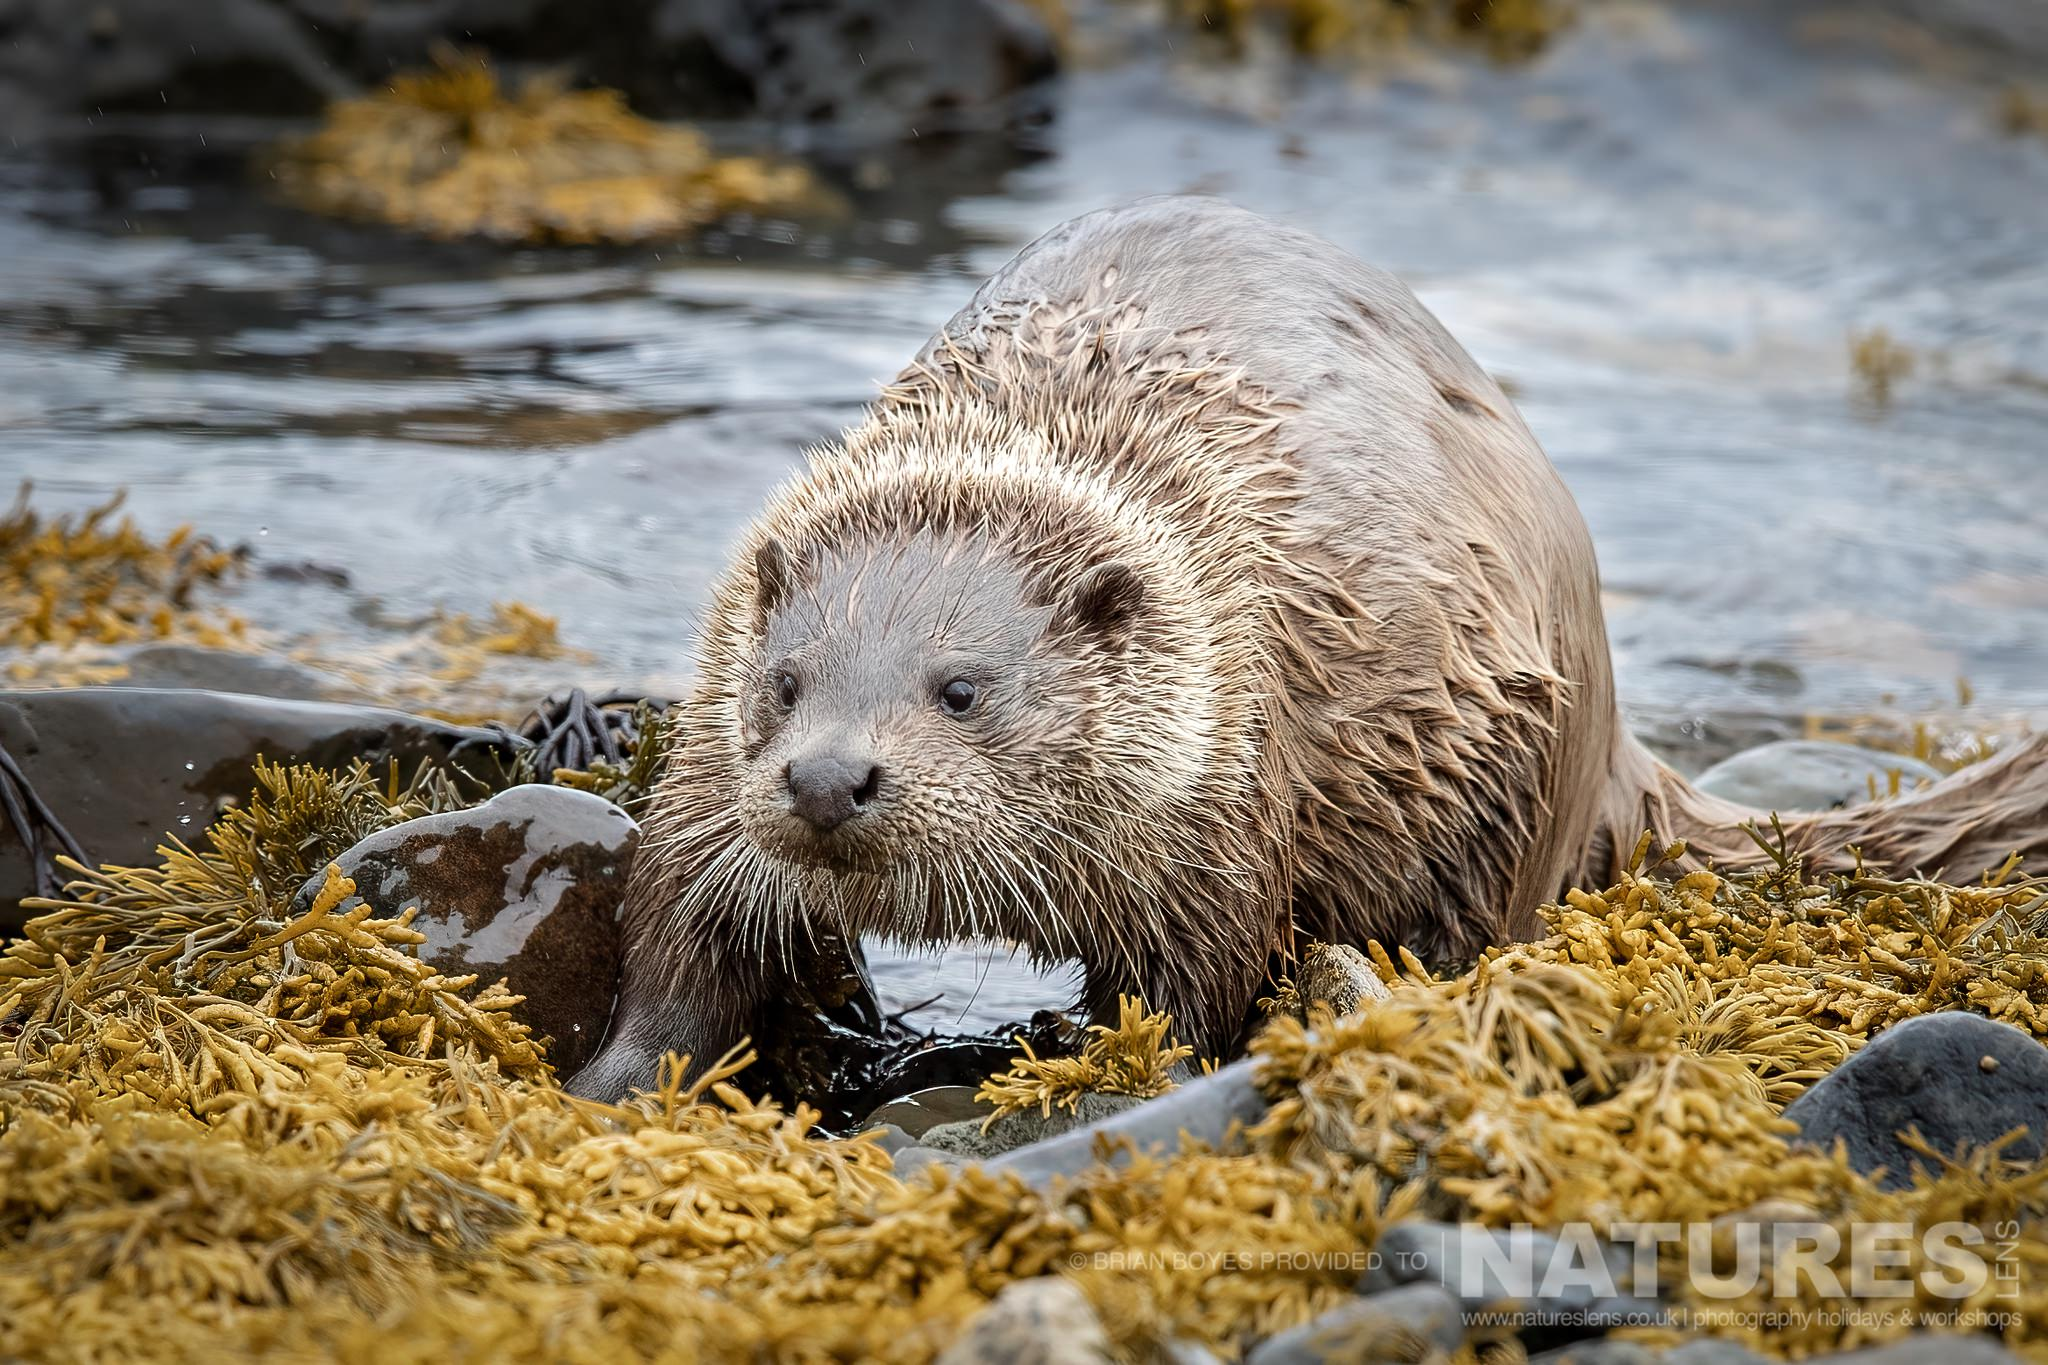 One of Mulls Eurasian Otters amongst the kelp as can be photographed during the NaturesLens WIldlife of Mull Photography Holiday